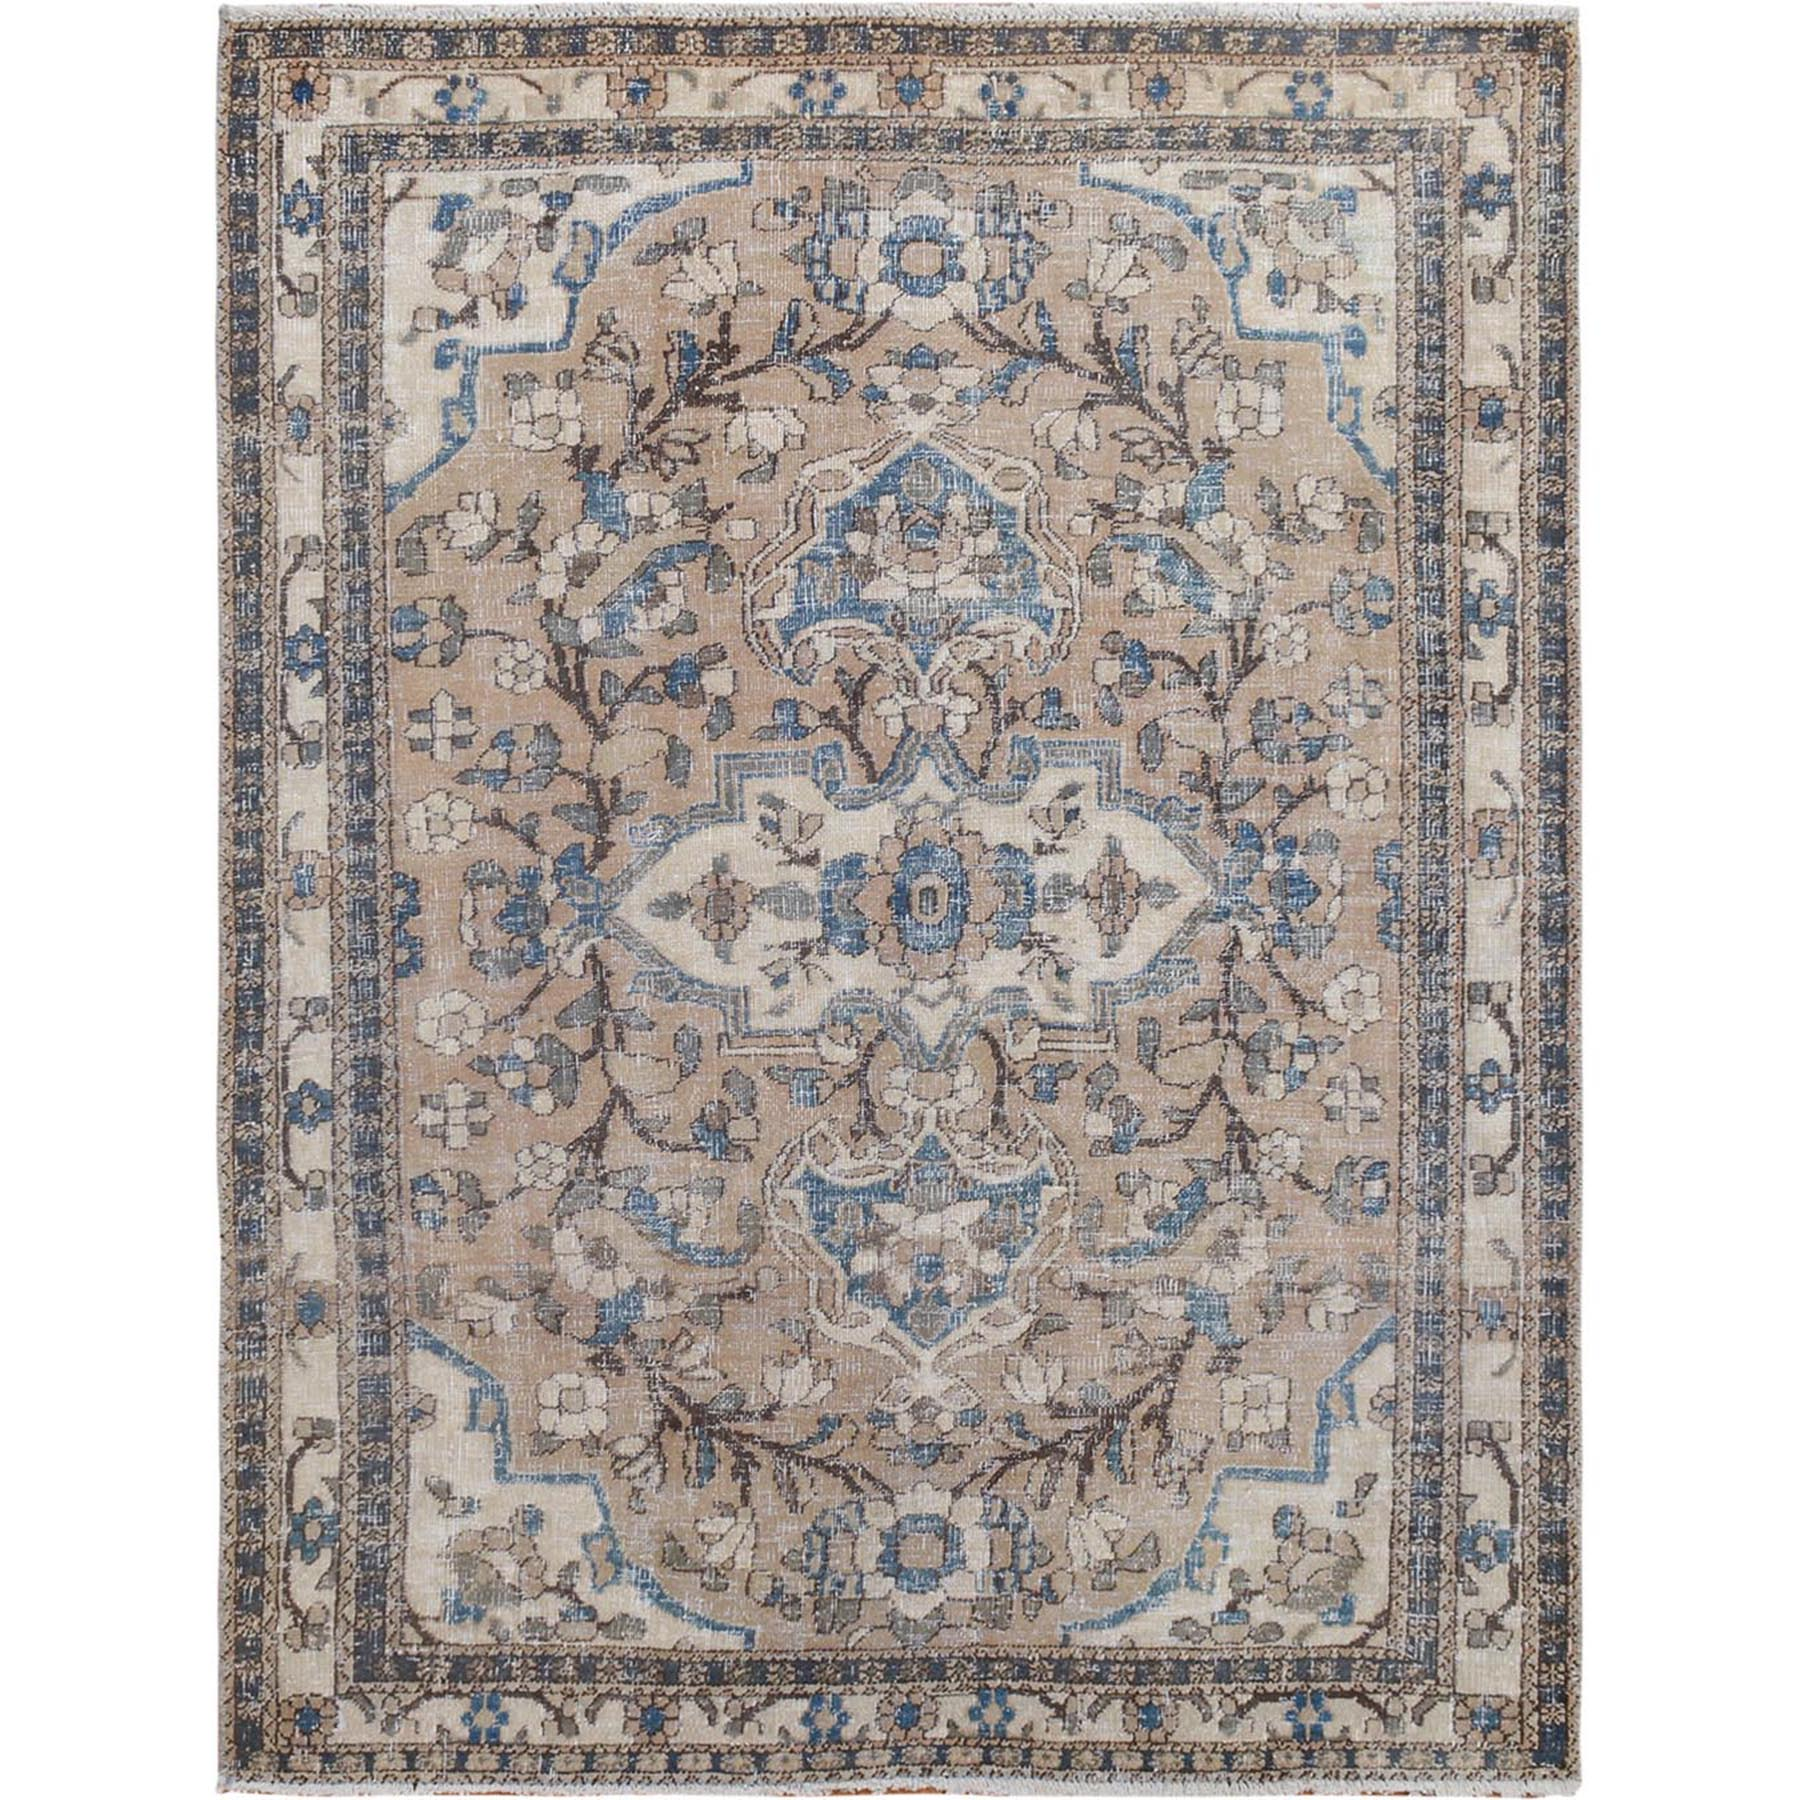 "4'9""x6'4"" Brown Vintage and Worn Down Persian Bakhtiari Pure Wool Hand Knotted Oriental Rug"